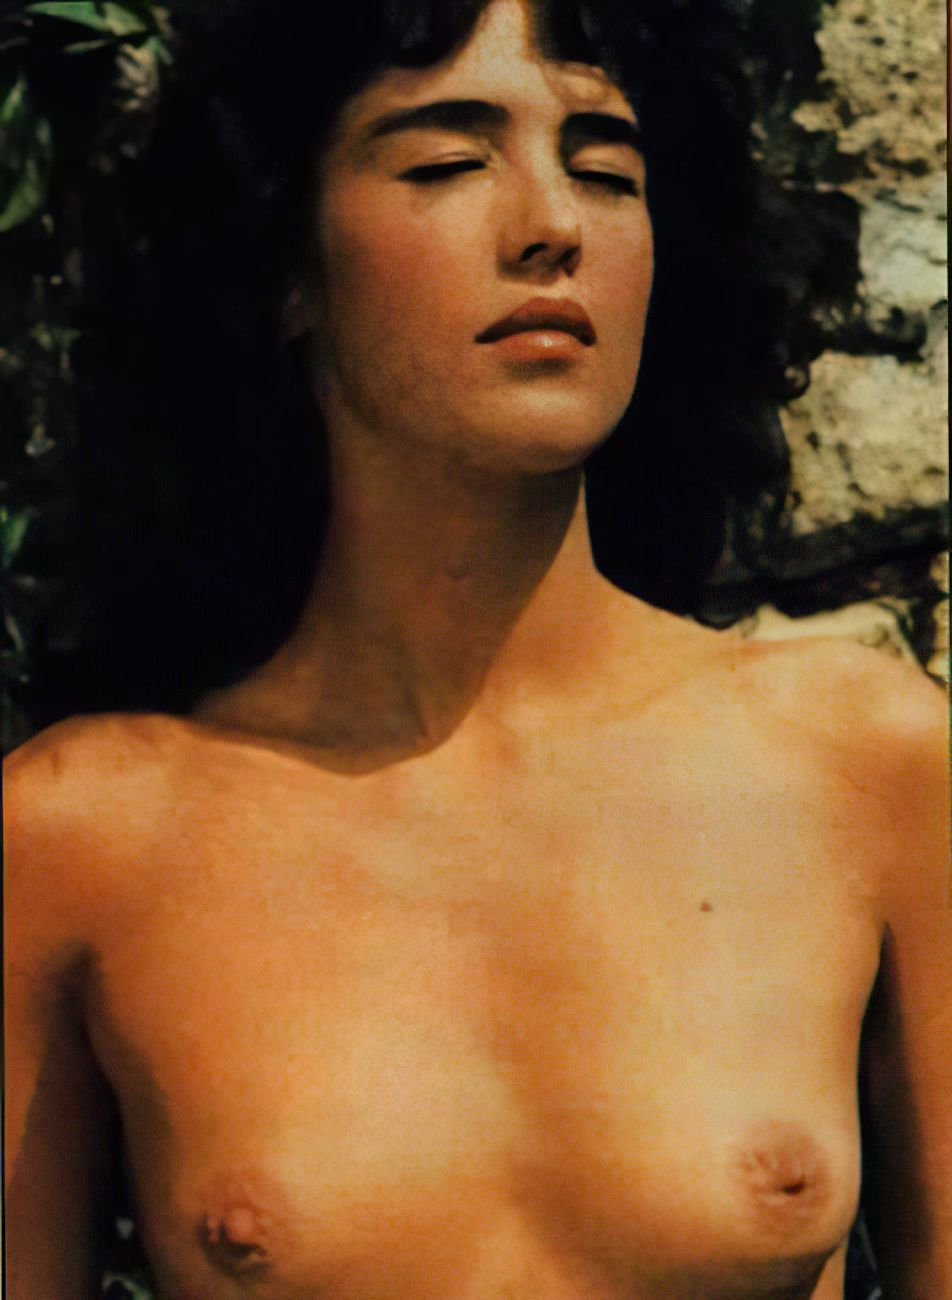 Isabelle Adjani Nude Collection (52 Photos + Videos)